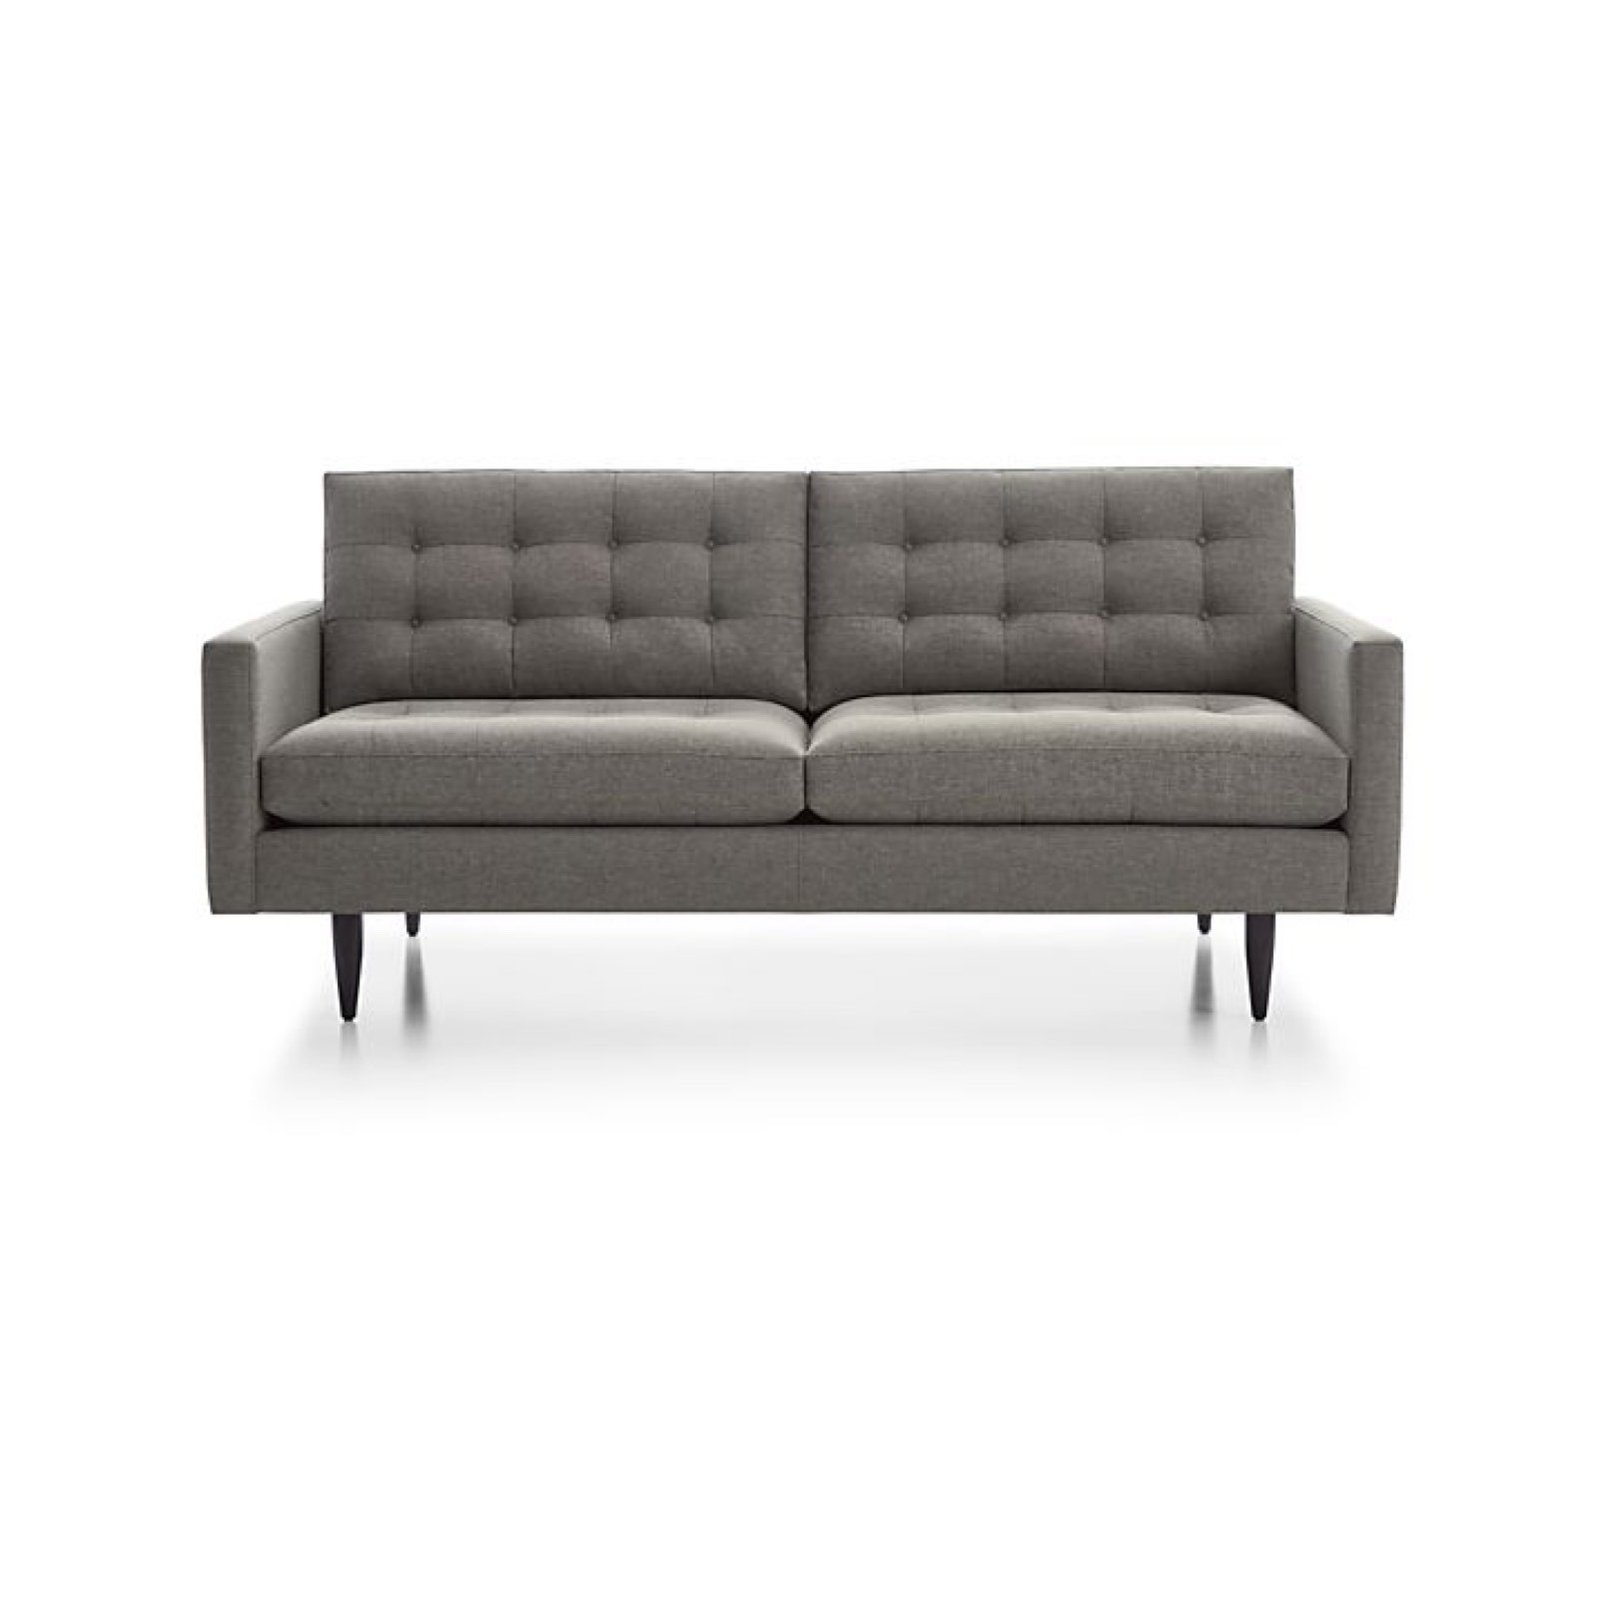 Admirable Crate Barrel Petrie Midcentury Sofa By Crate And Barrel Pabps2019 Chair Design Images Pabps2019Com